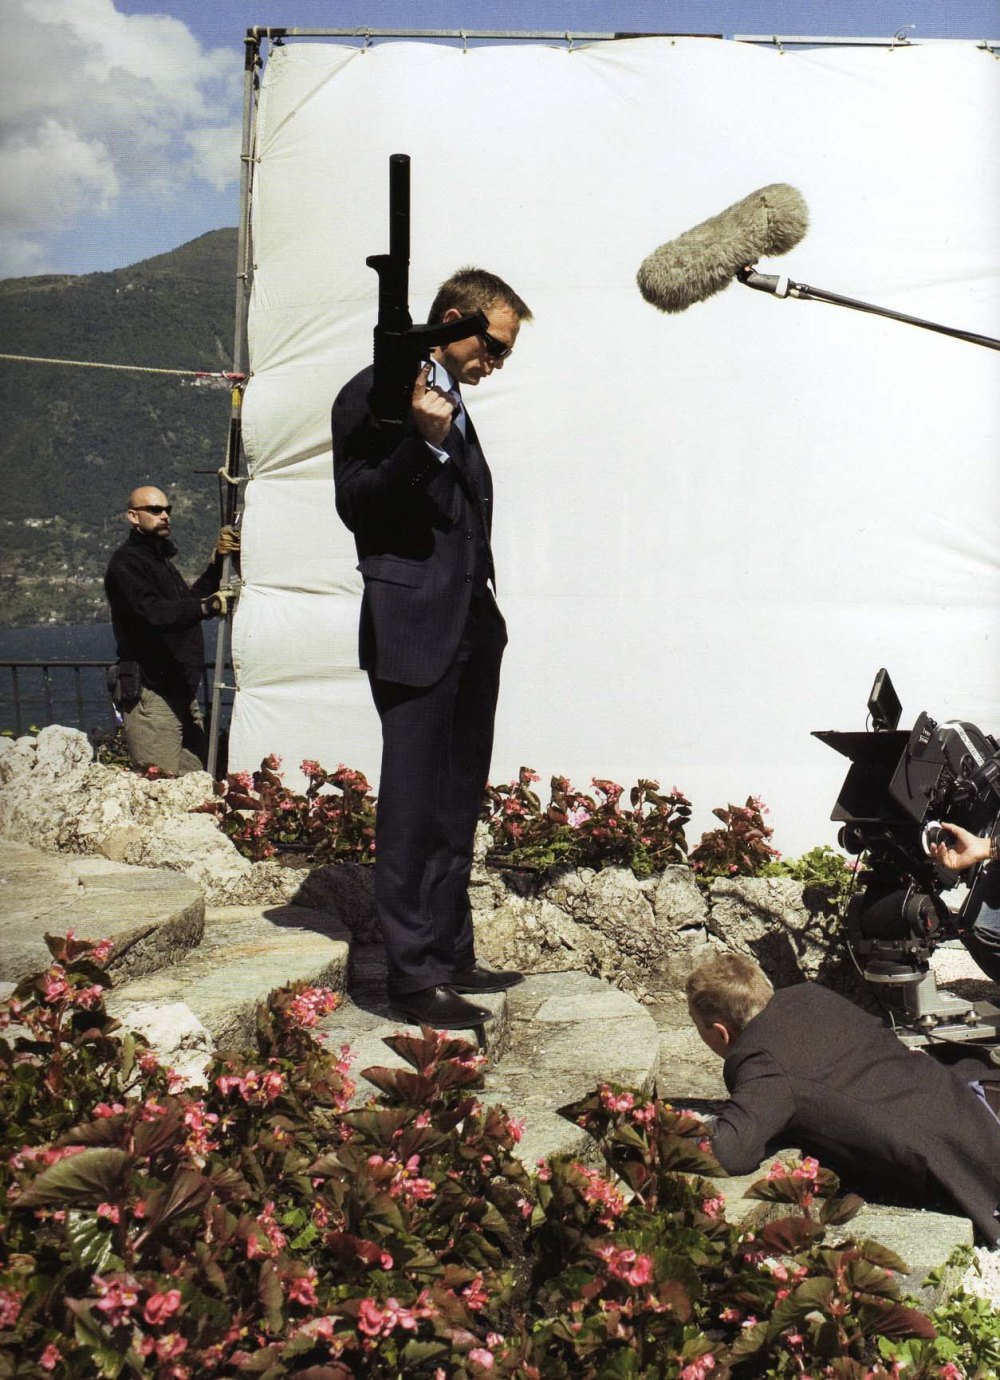 Daniel Craig and Jesper Christiansen filming scenes at Villa La Gaeta for Casino Royale